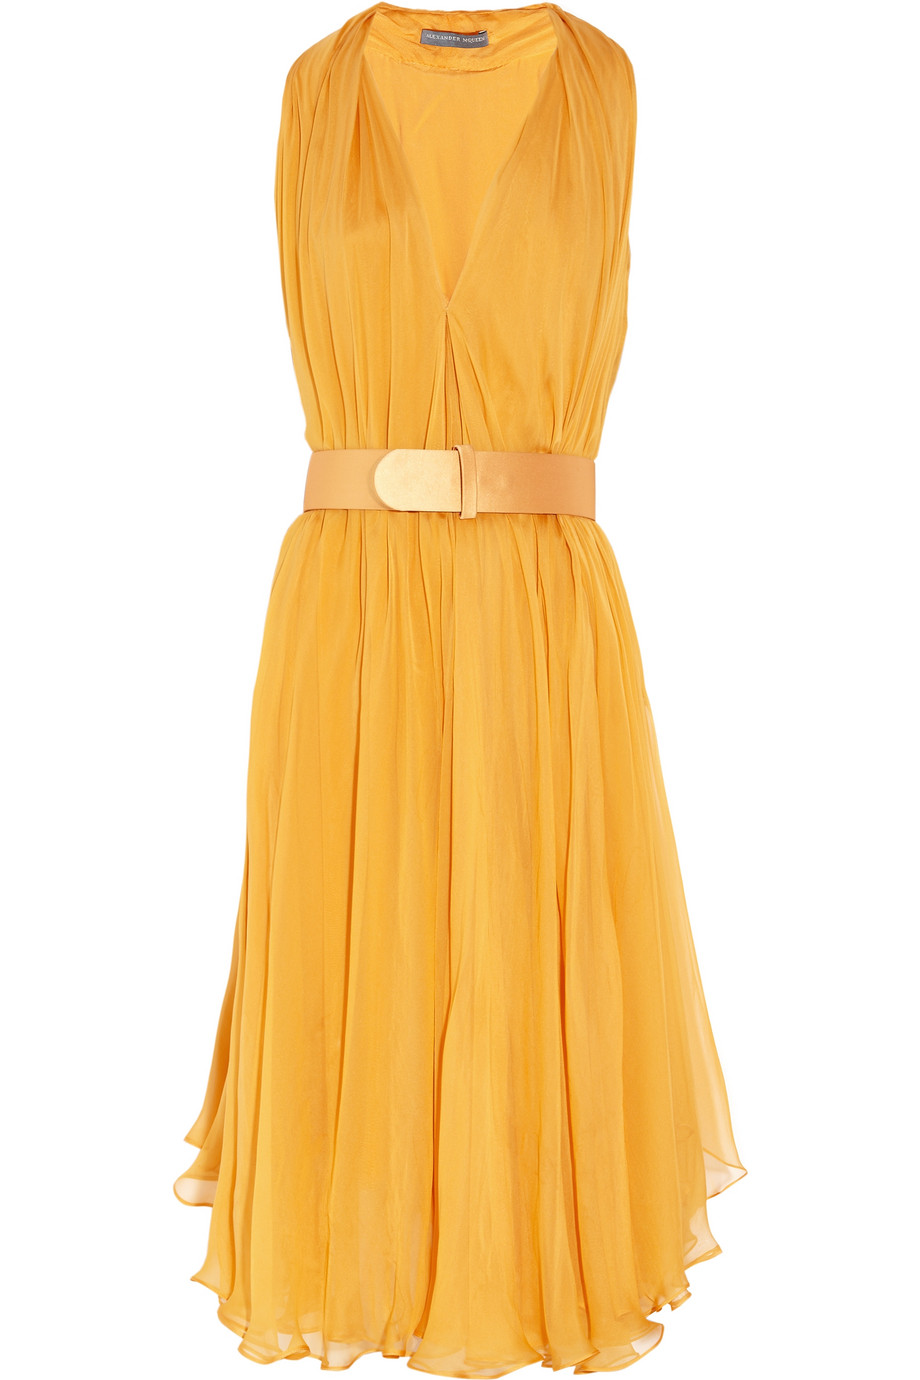 Alexander mcqueen Belted Silk-Chiffon Dress in Yellow | Lyst